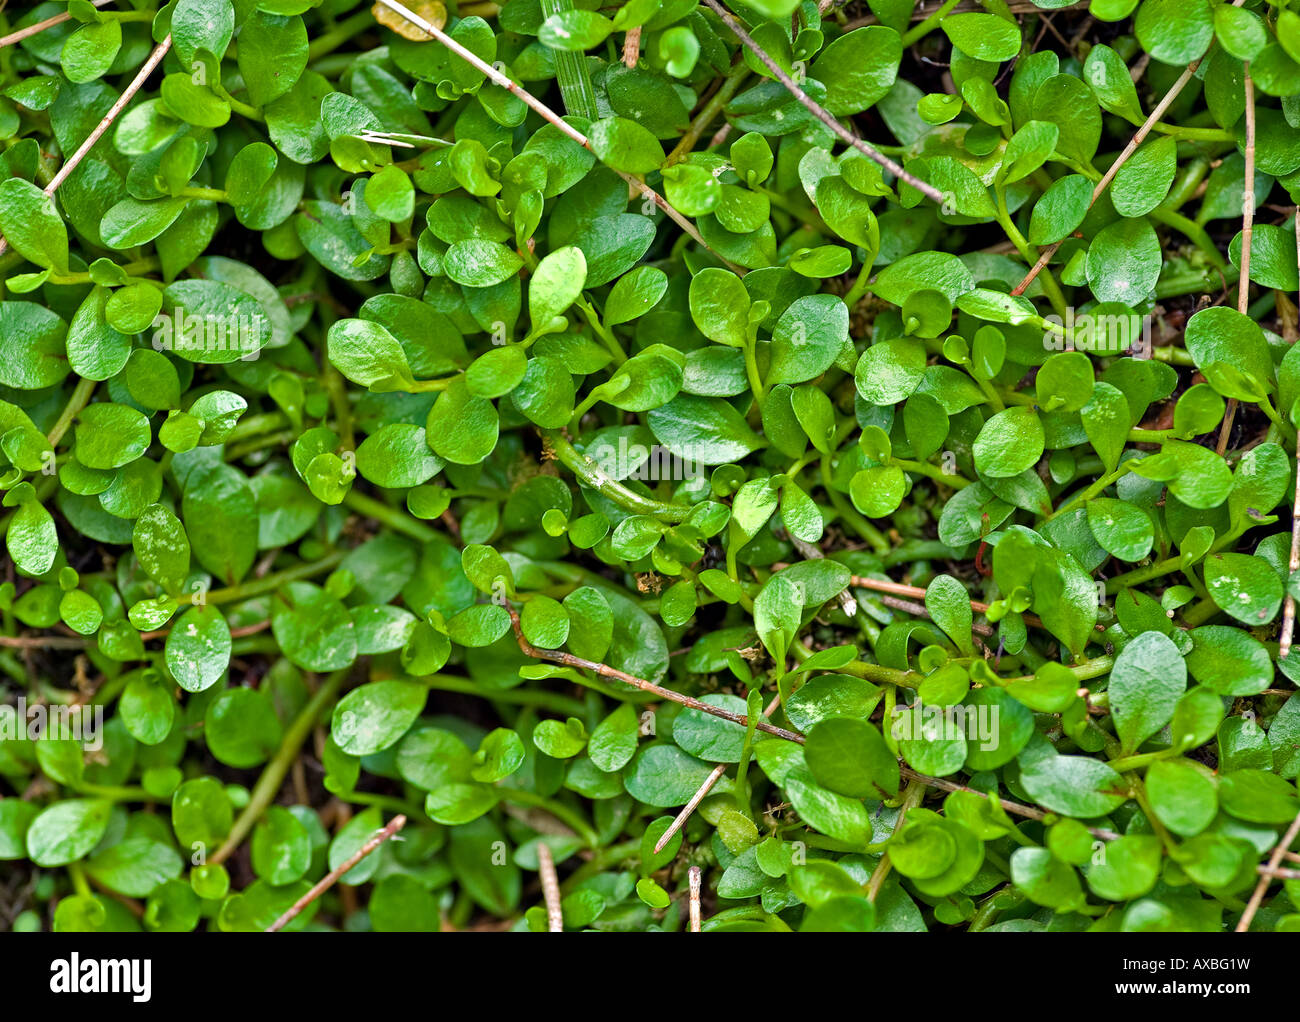 beautiful green creeper makes a great nature plant background - Stock Image